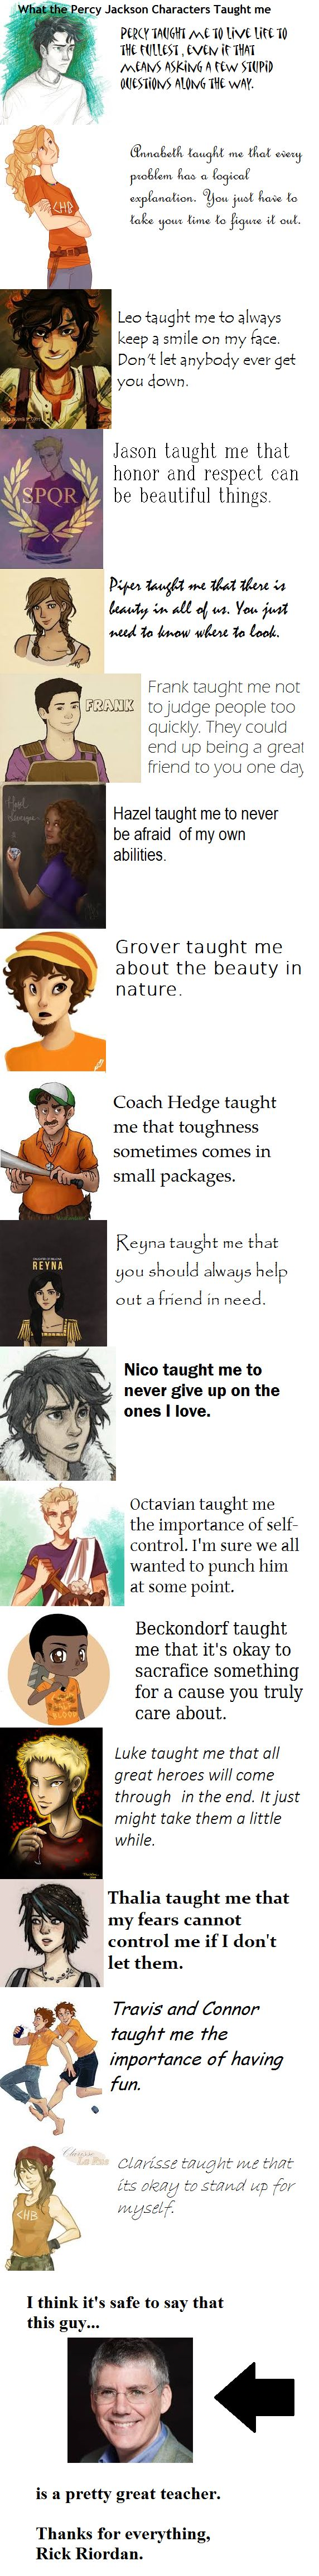 What the Percy Jackson Characters Taught me~ Rick Riordan is a great teacher. Books and Reading